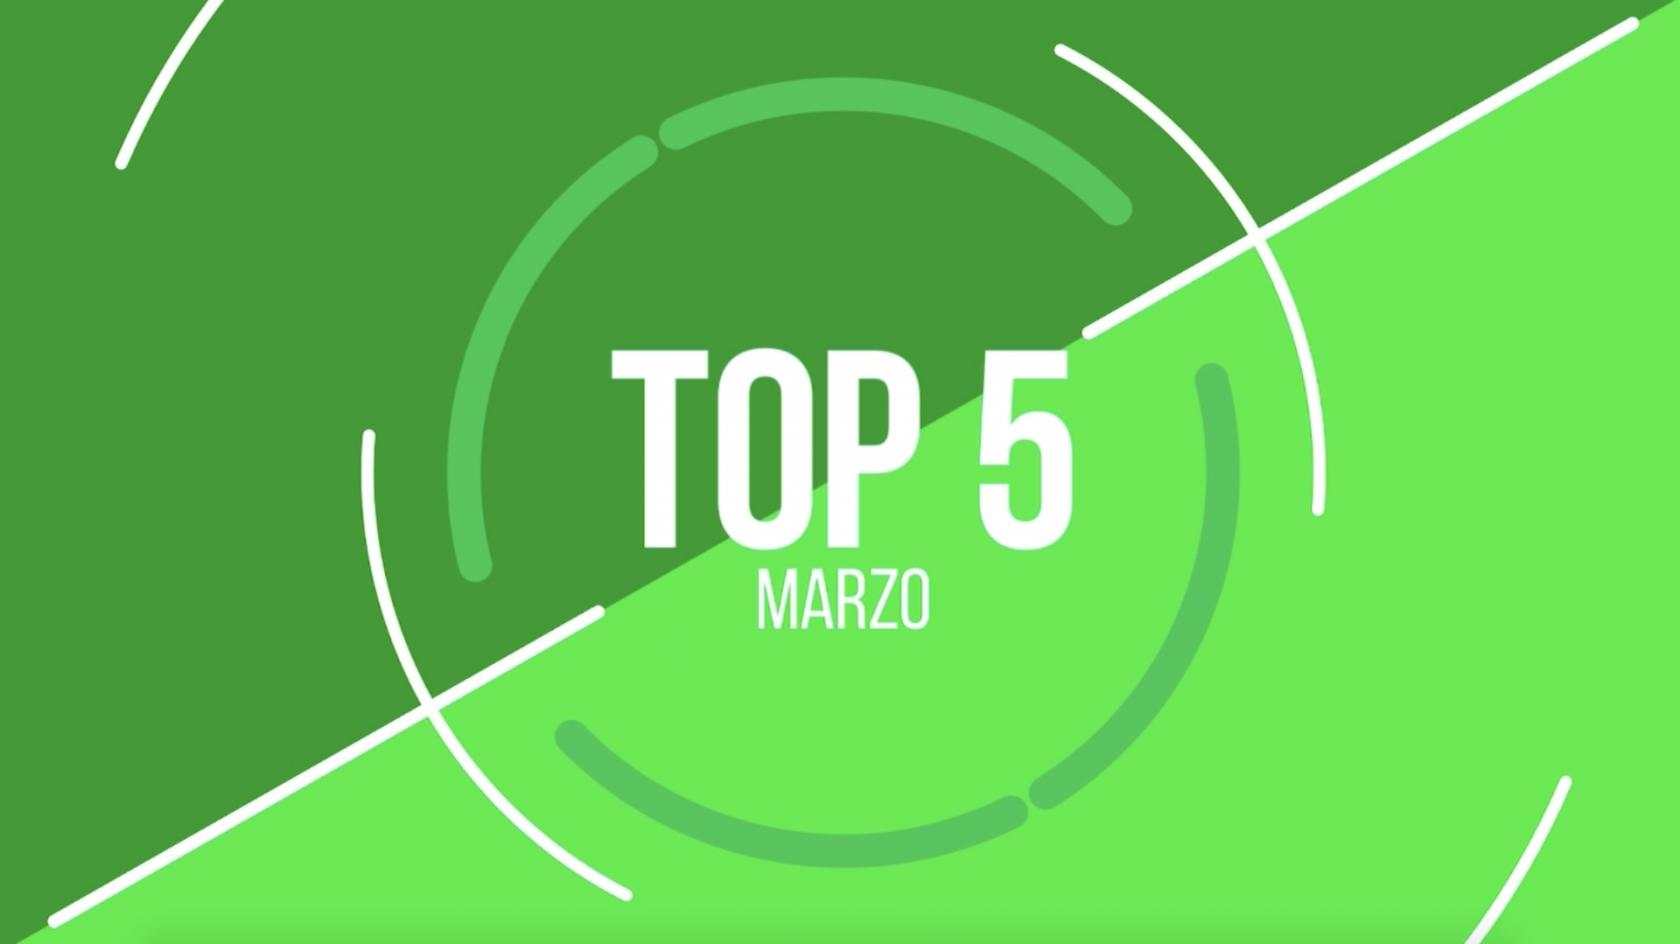 Top 5 of Unicaja  in March